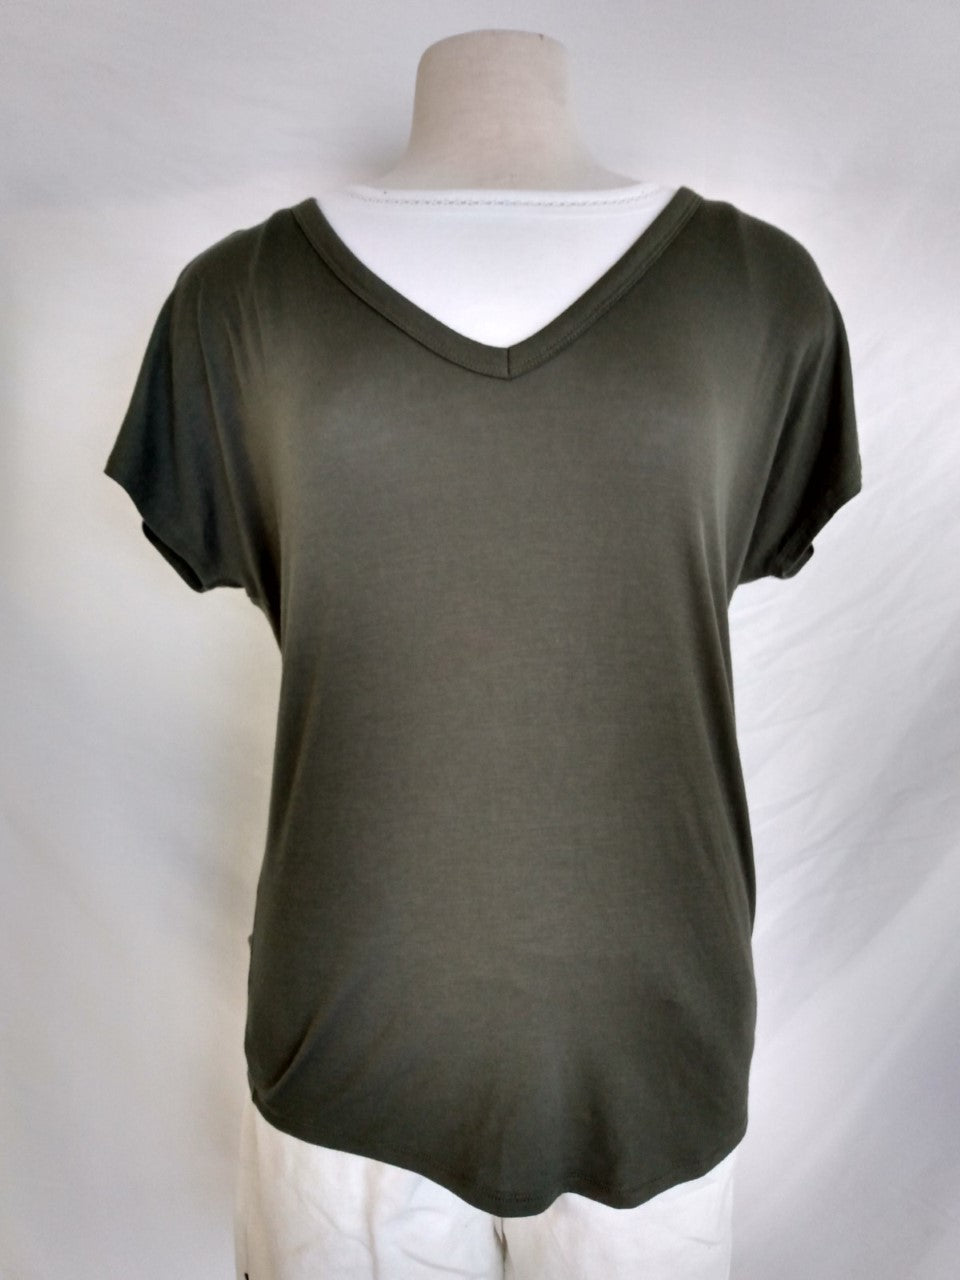 Express Short-sleeve Knit Top- Size: XS- NEW